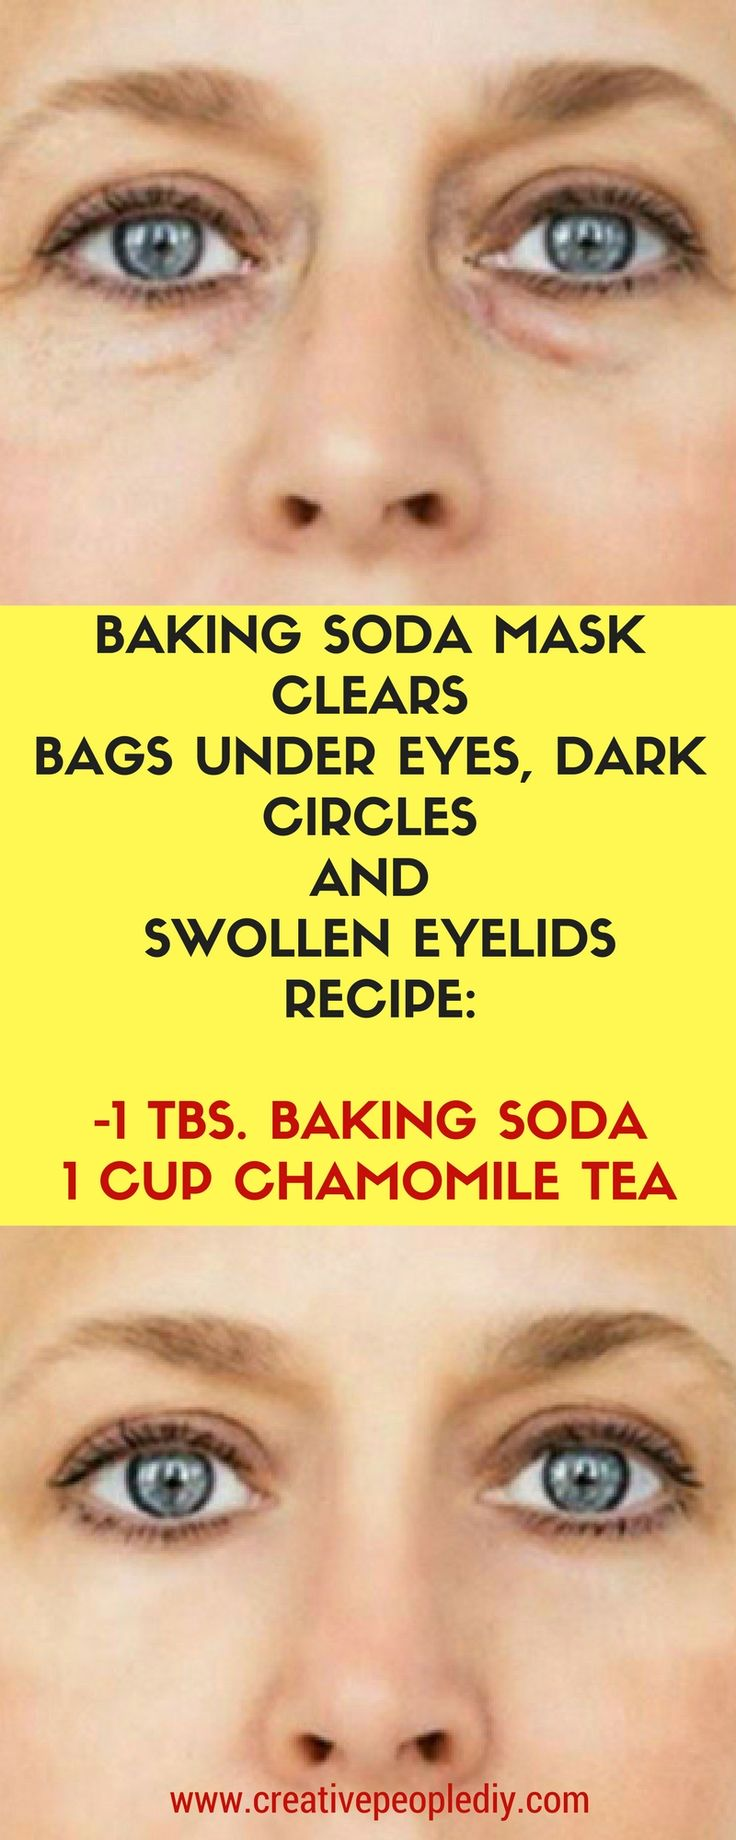 BAKING SODA MASK CLEARS BAGS UNDER EYES, DARK CIRCLES AND SWOLLEN EYELIDS (RECIPE)